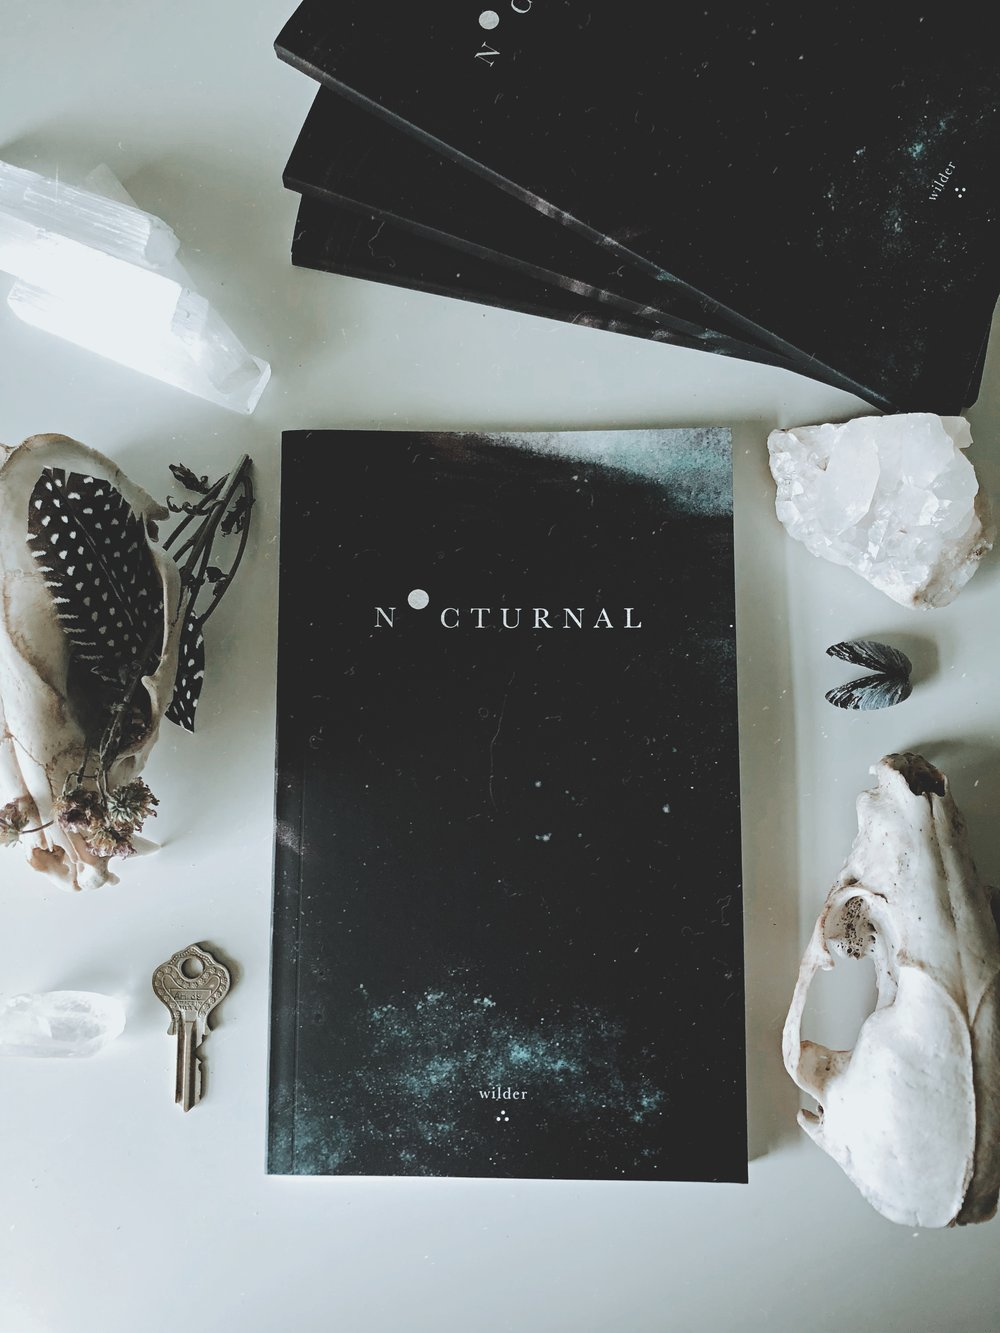 Nocturnal - Nocturnal is a collection of words and imagery inspired by darkened skies and sleepless nights. it is a journey of healing and self-discovery whether love stays or leaves. it is dreaming with your eyes wide open while the rest of the world is hiding.•